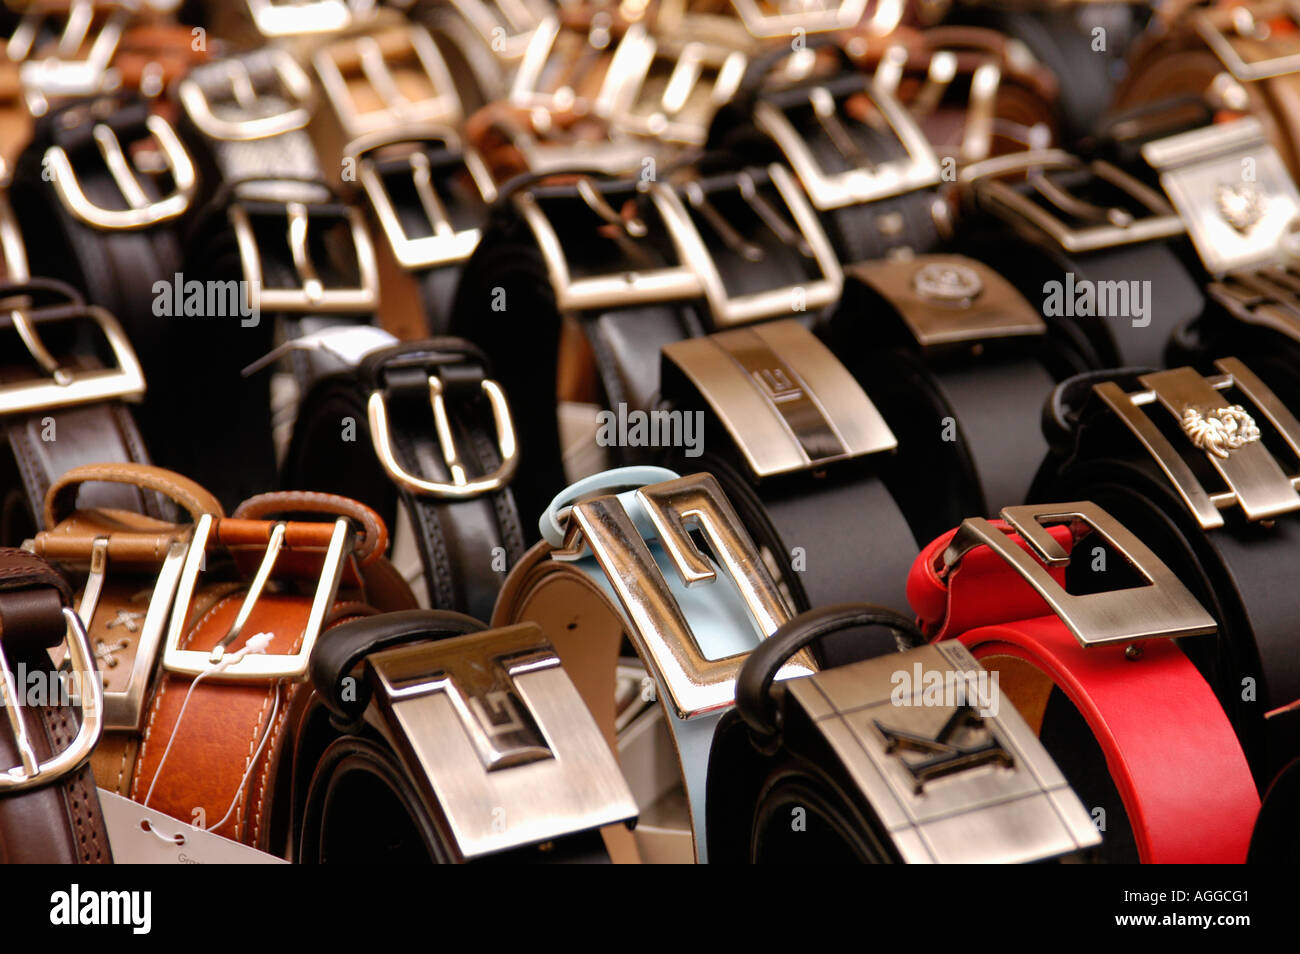 exclusive belts for sale, Rome, Italy - Stock Image